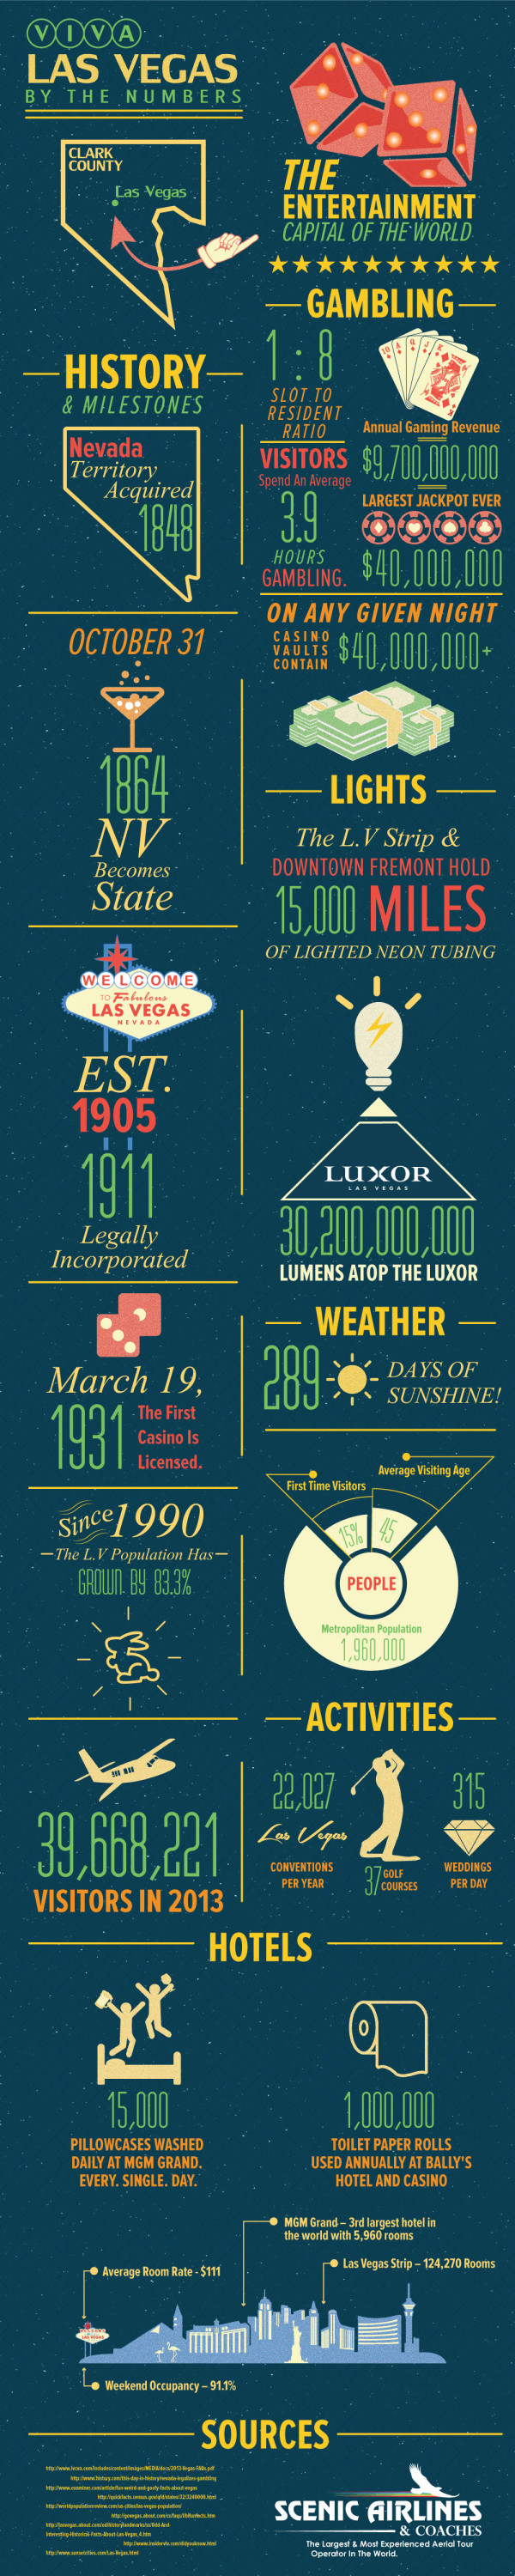 Viva Las Vegas by the Numbers